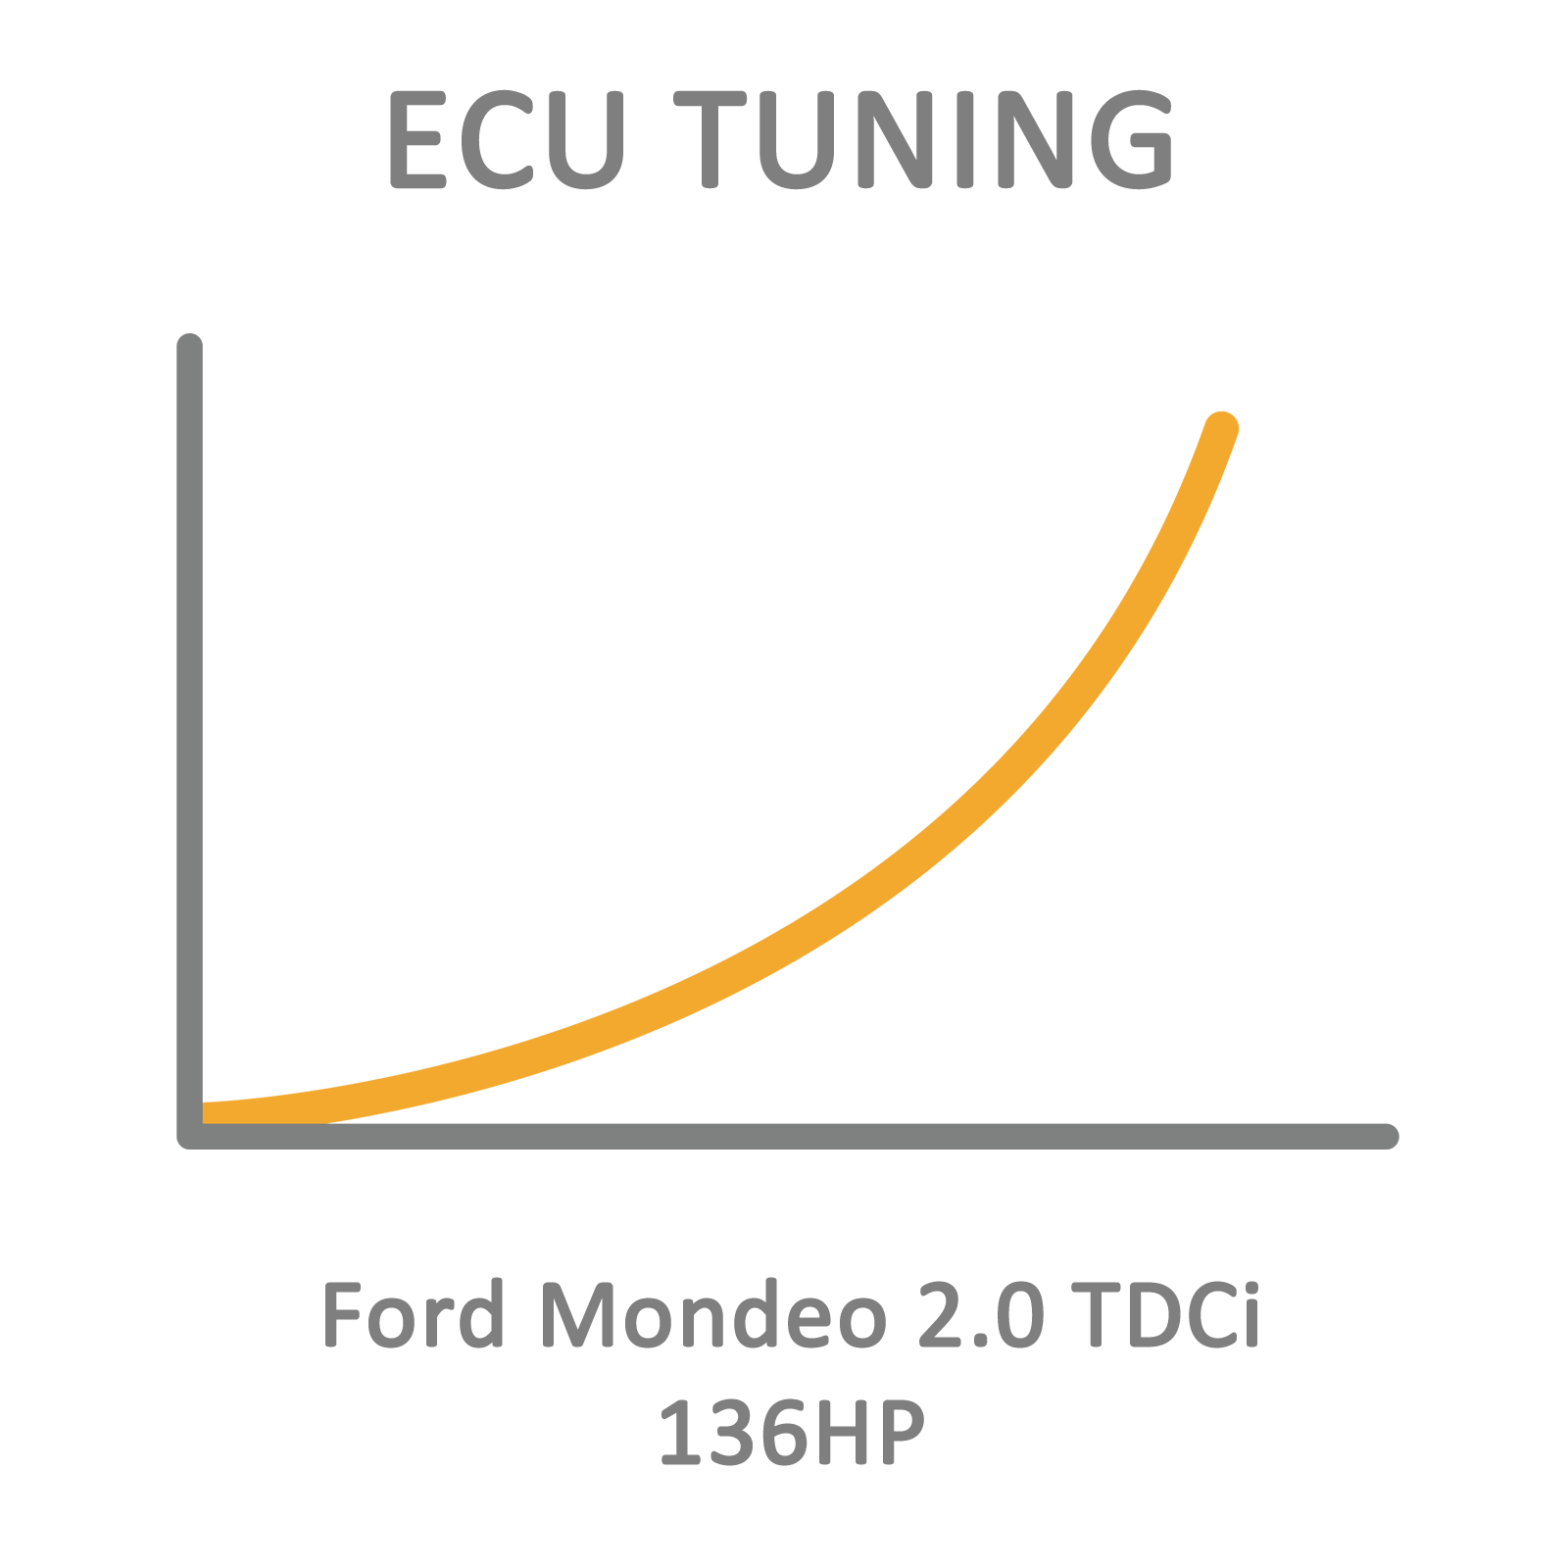 Ford Mondeo 2.0 TDCi 136HP ECU Tuning Remapping Programming